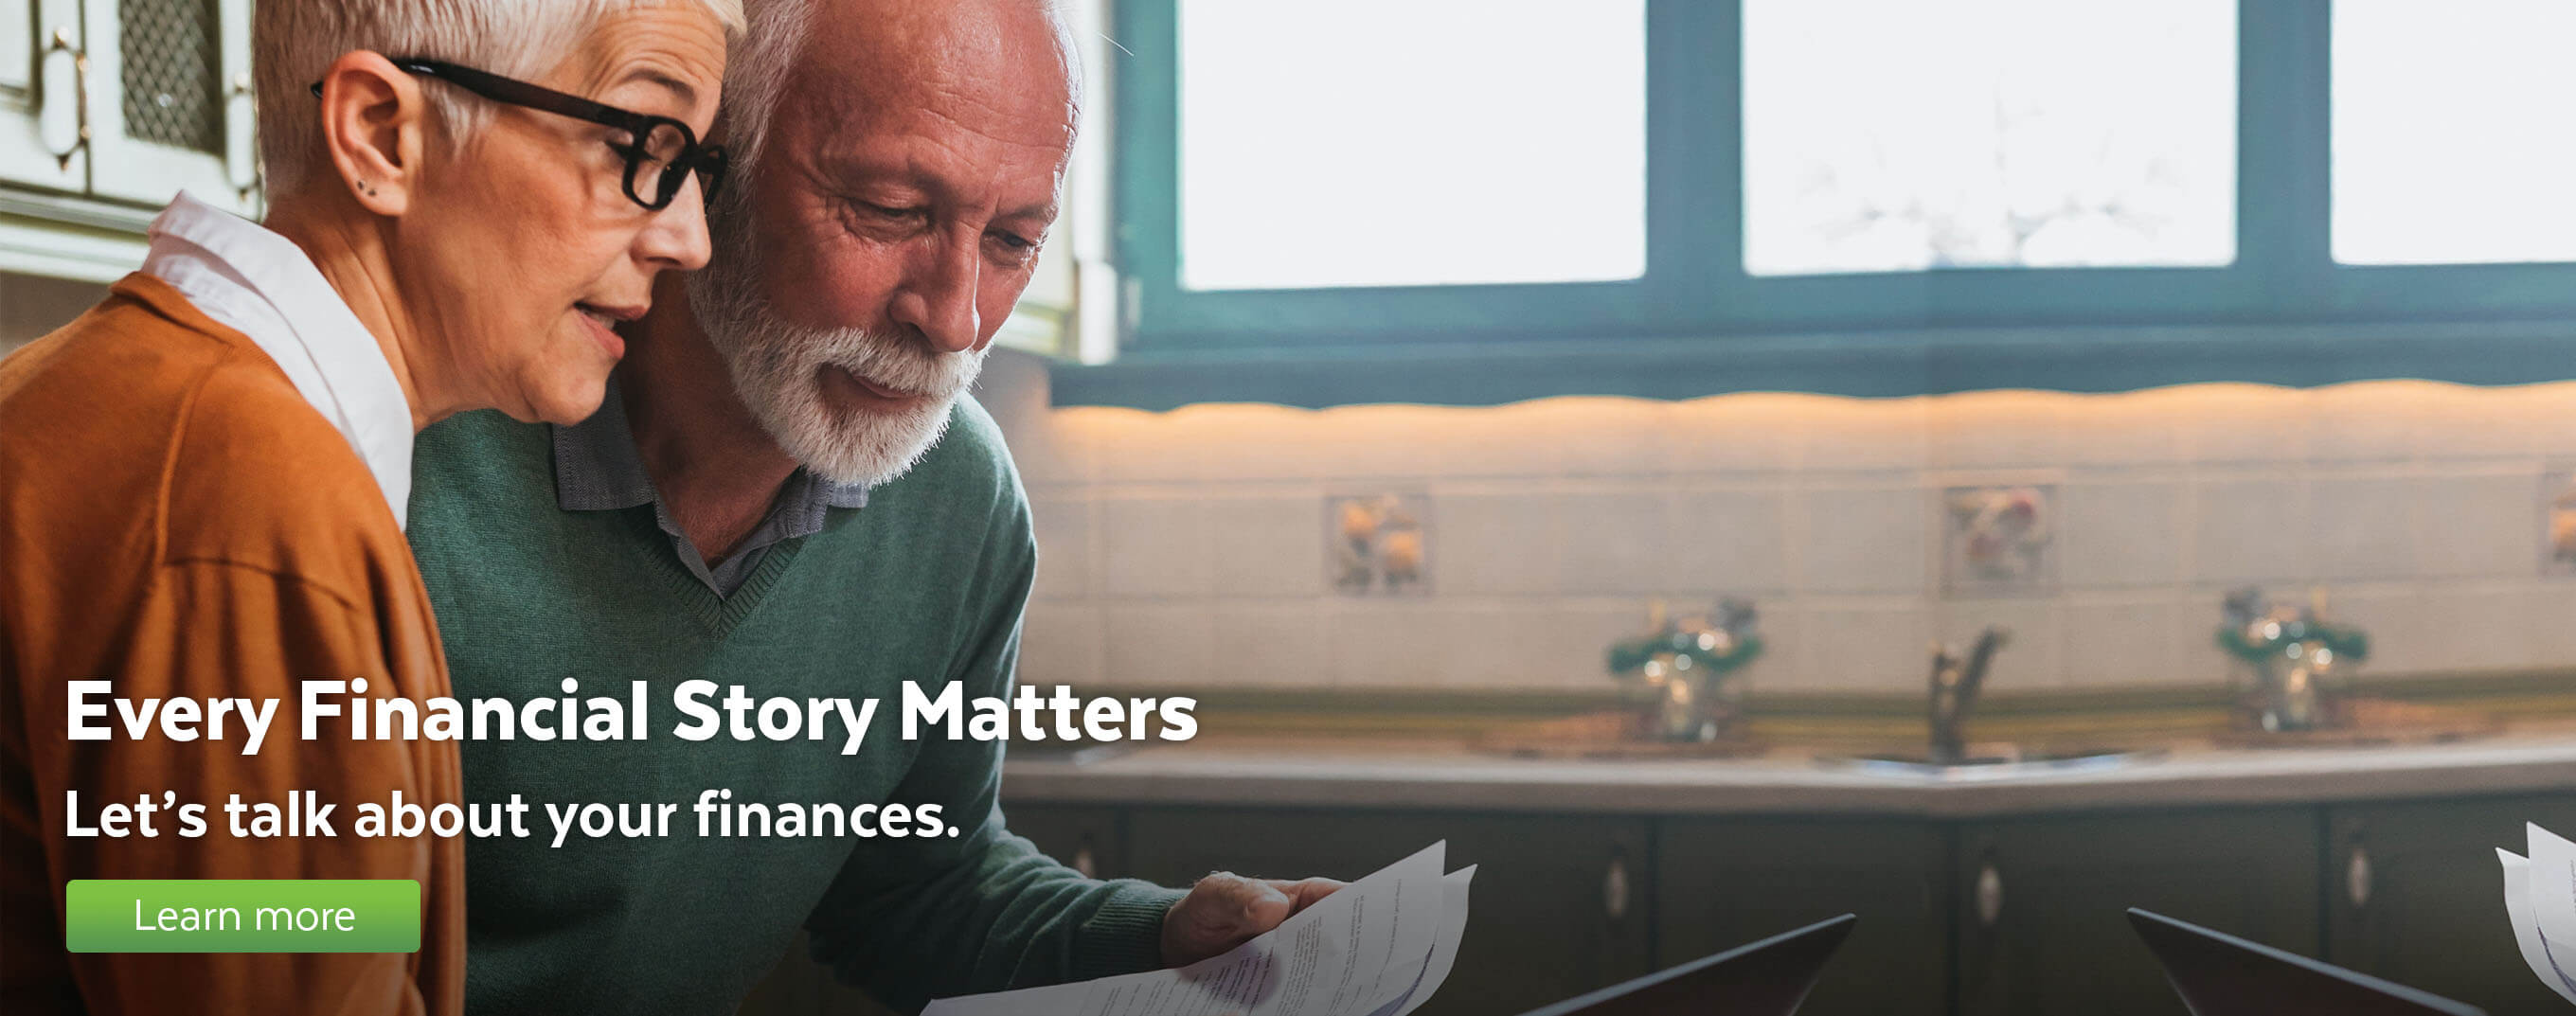 Every financial story matters. Let's talk about your finances.